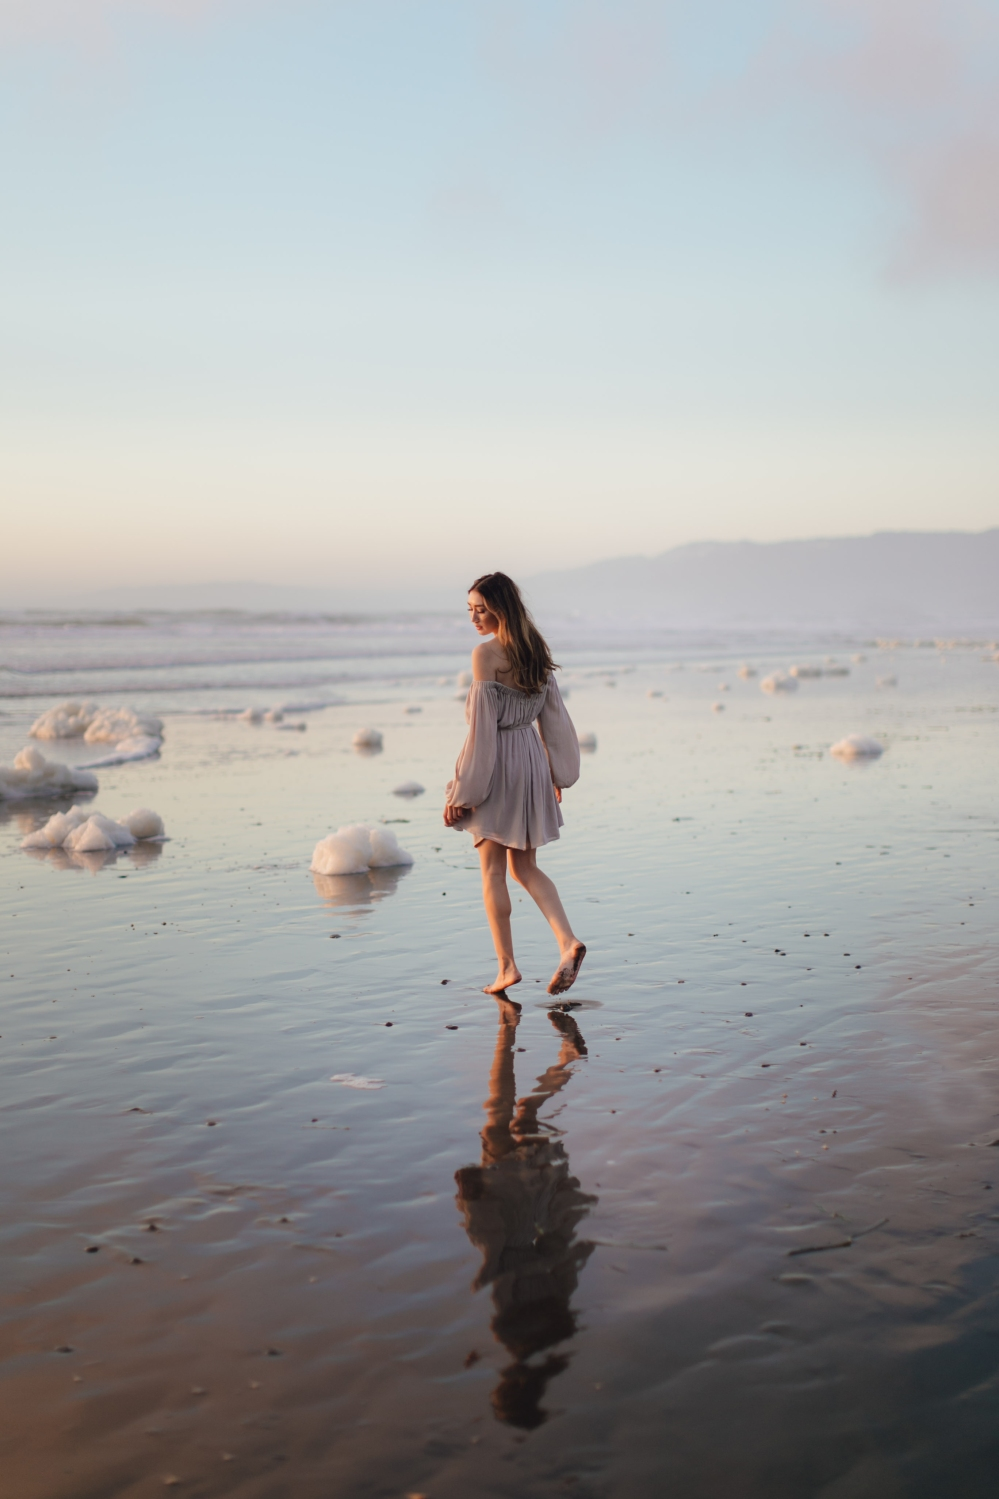 clouded-alyssa-nicole-hannah-dress-ocean-beach-5